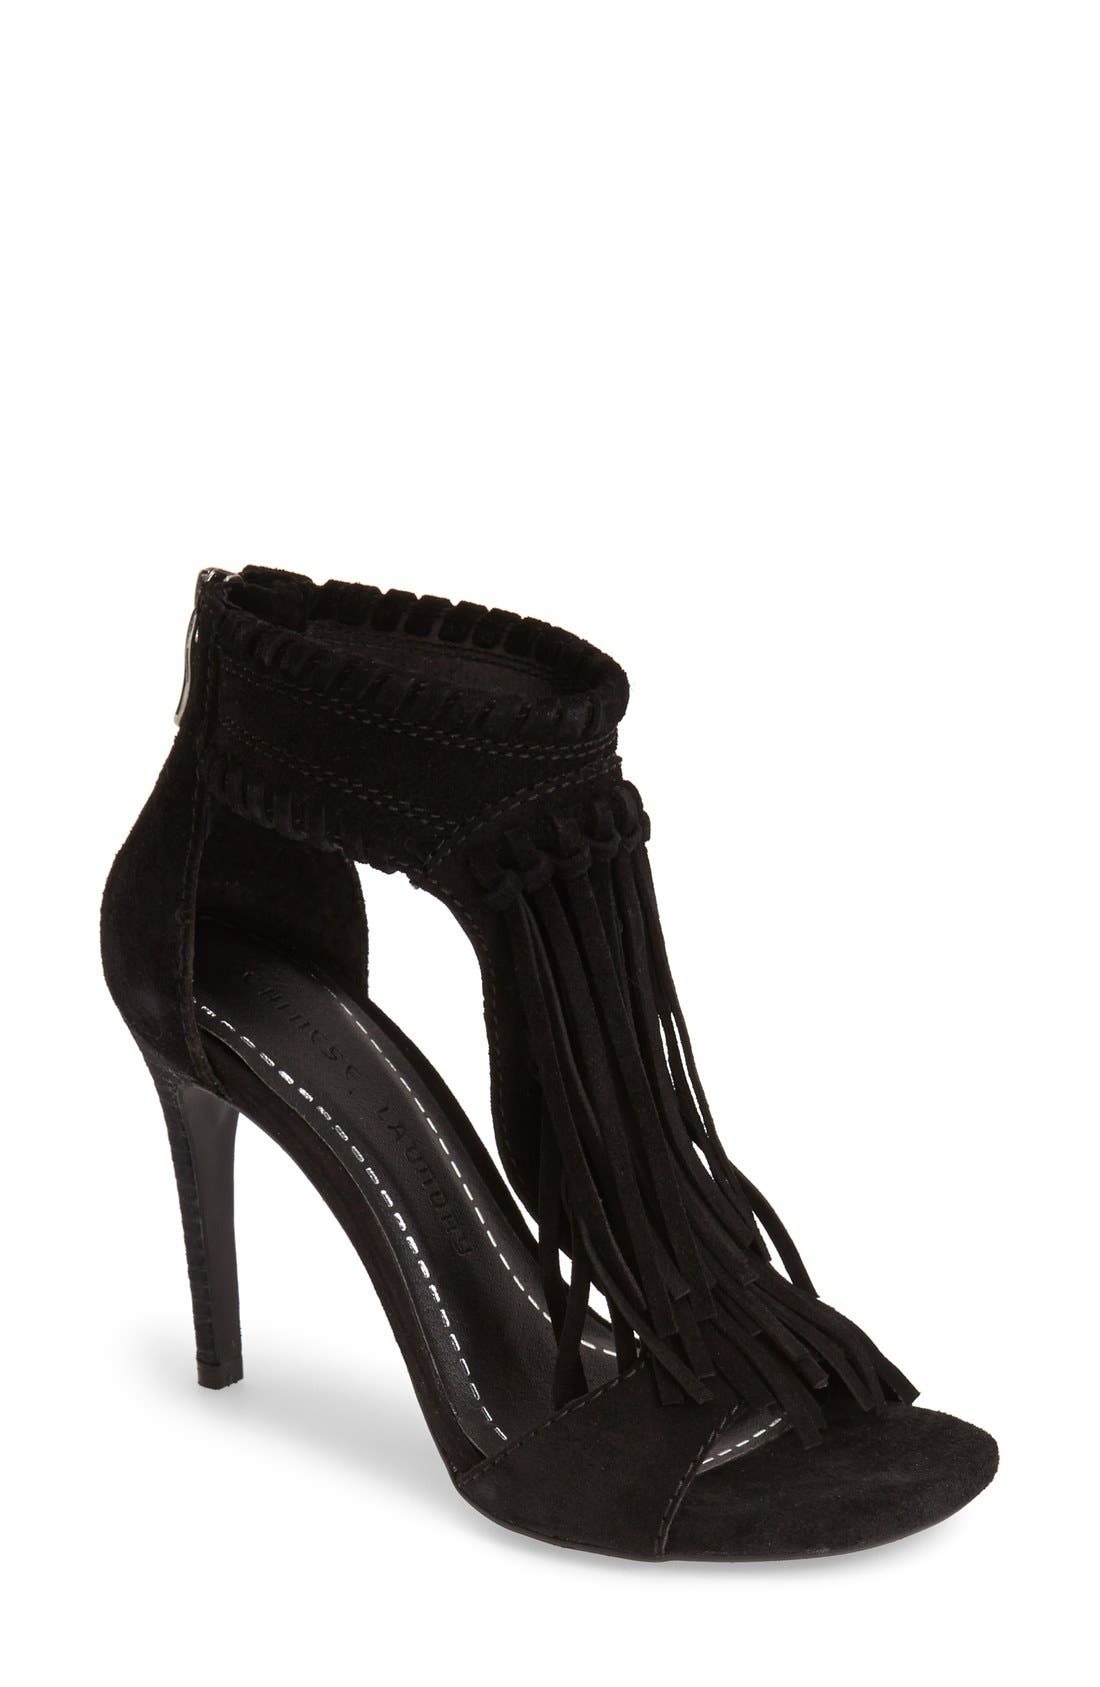 Alternate Image 1 Selected - Chinese Laundry 'Santa Fe' Suede Fringe Sandal (Women)